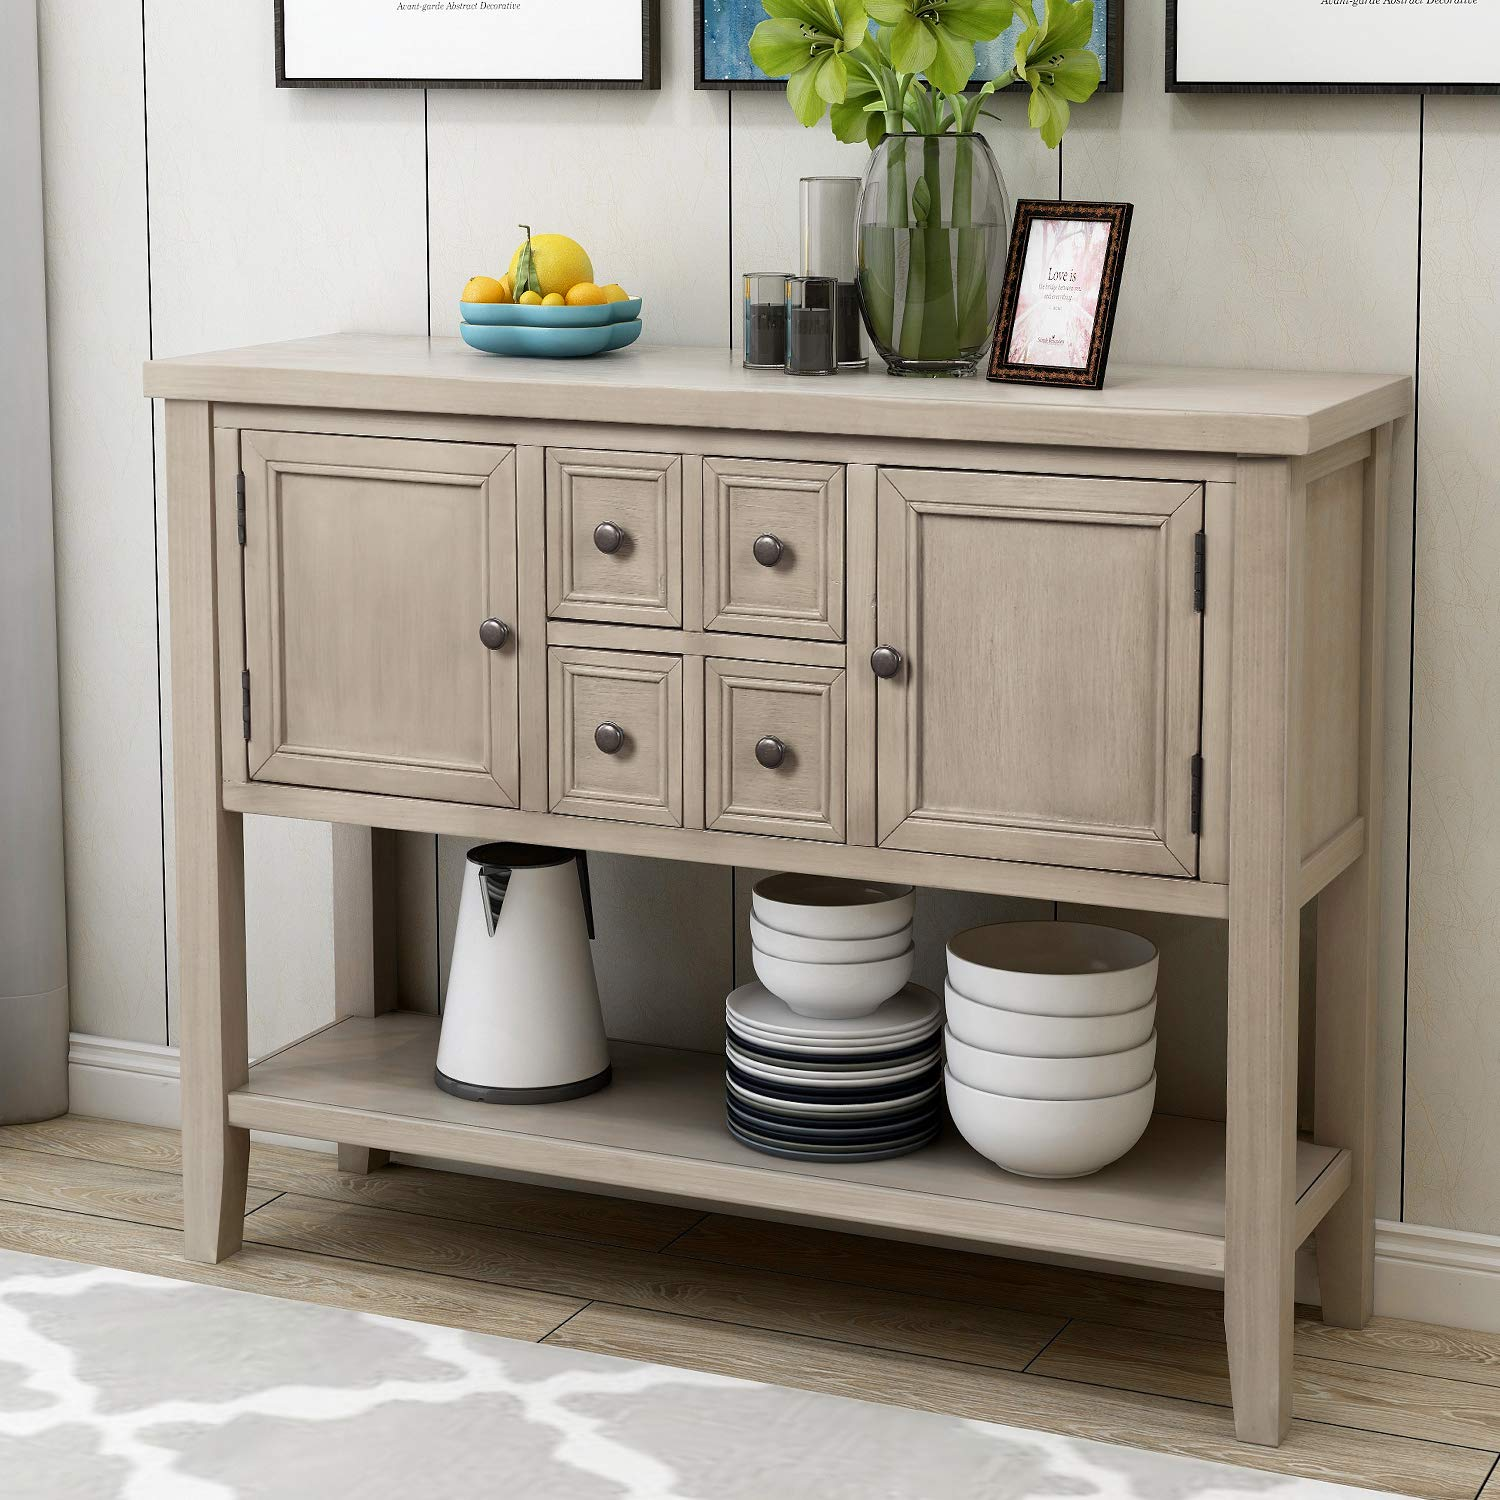 P PURLOVE Console Table Buffet Sideboard with Storage Drawers Cabinets and Bottom Shelf (Retro Grey) by P PURLOVE